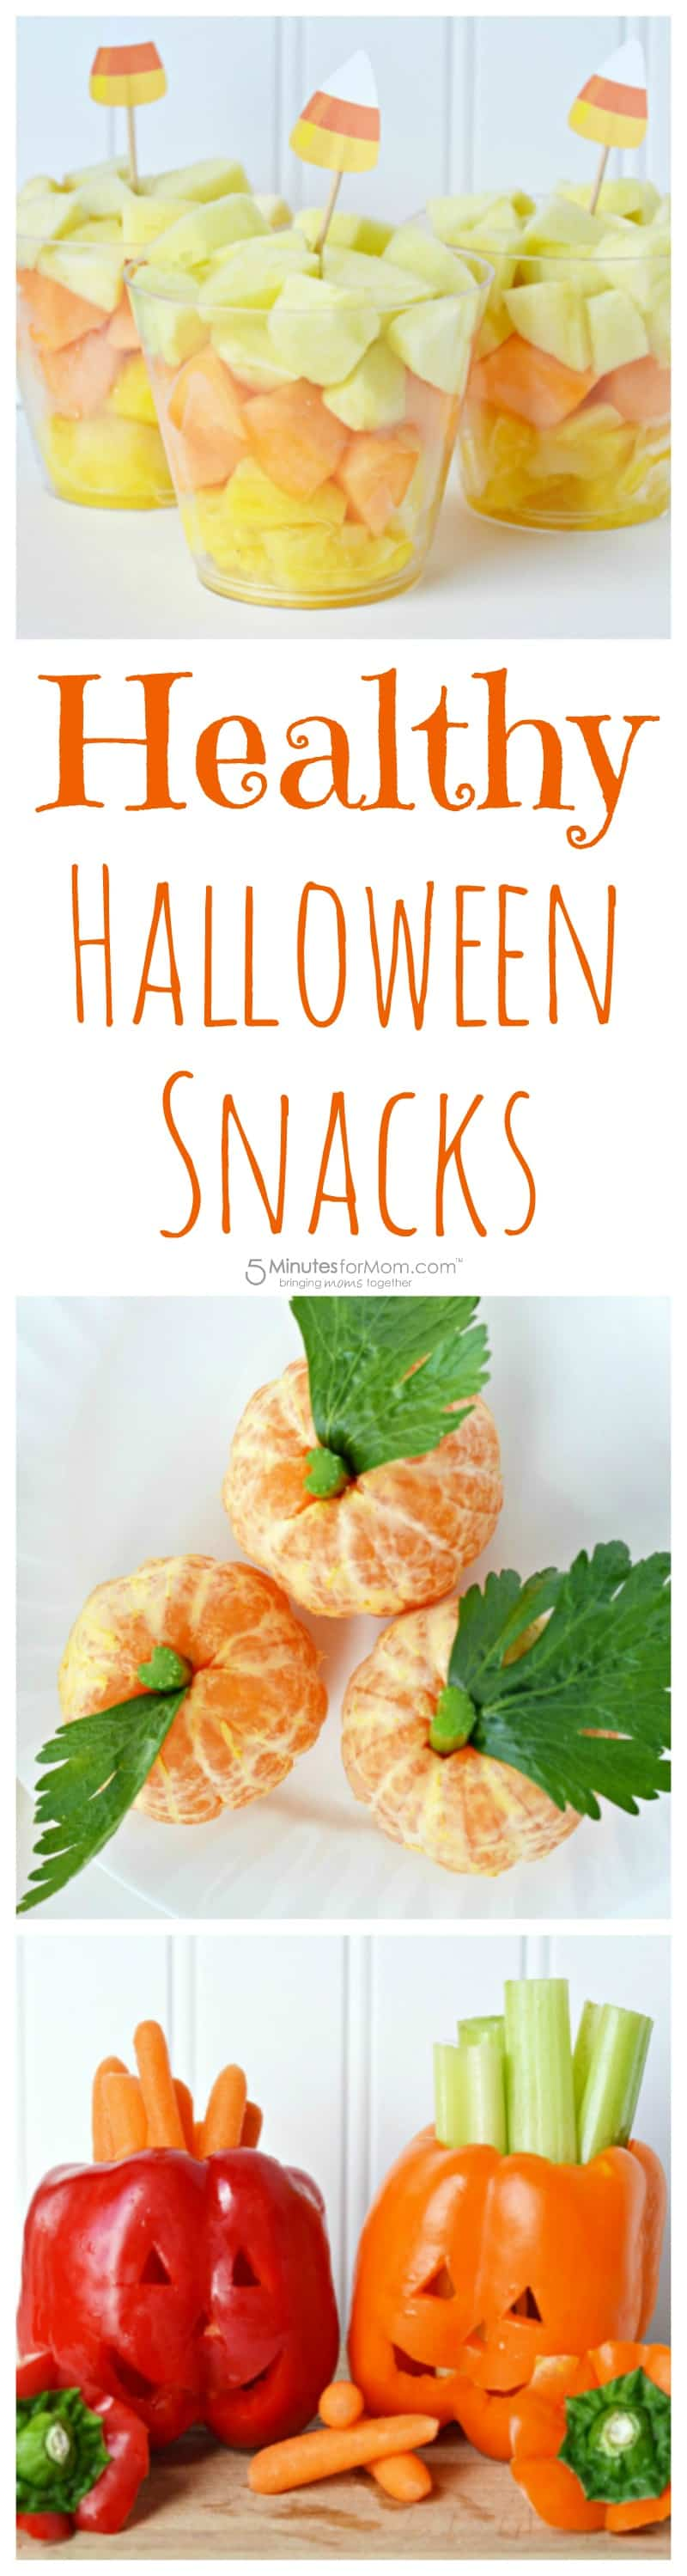 Healthy Halloween Snacks with Fruits and Vegetables